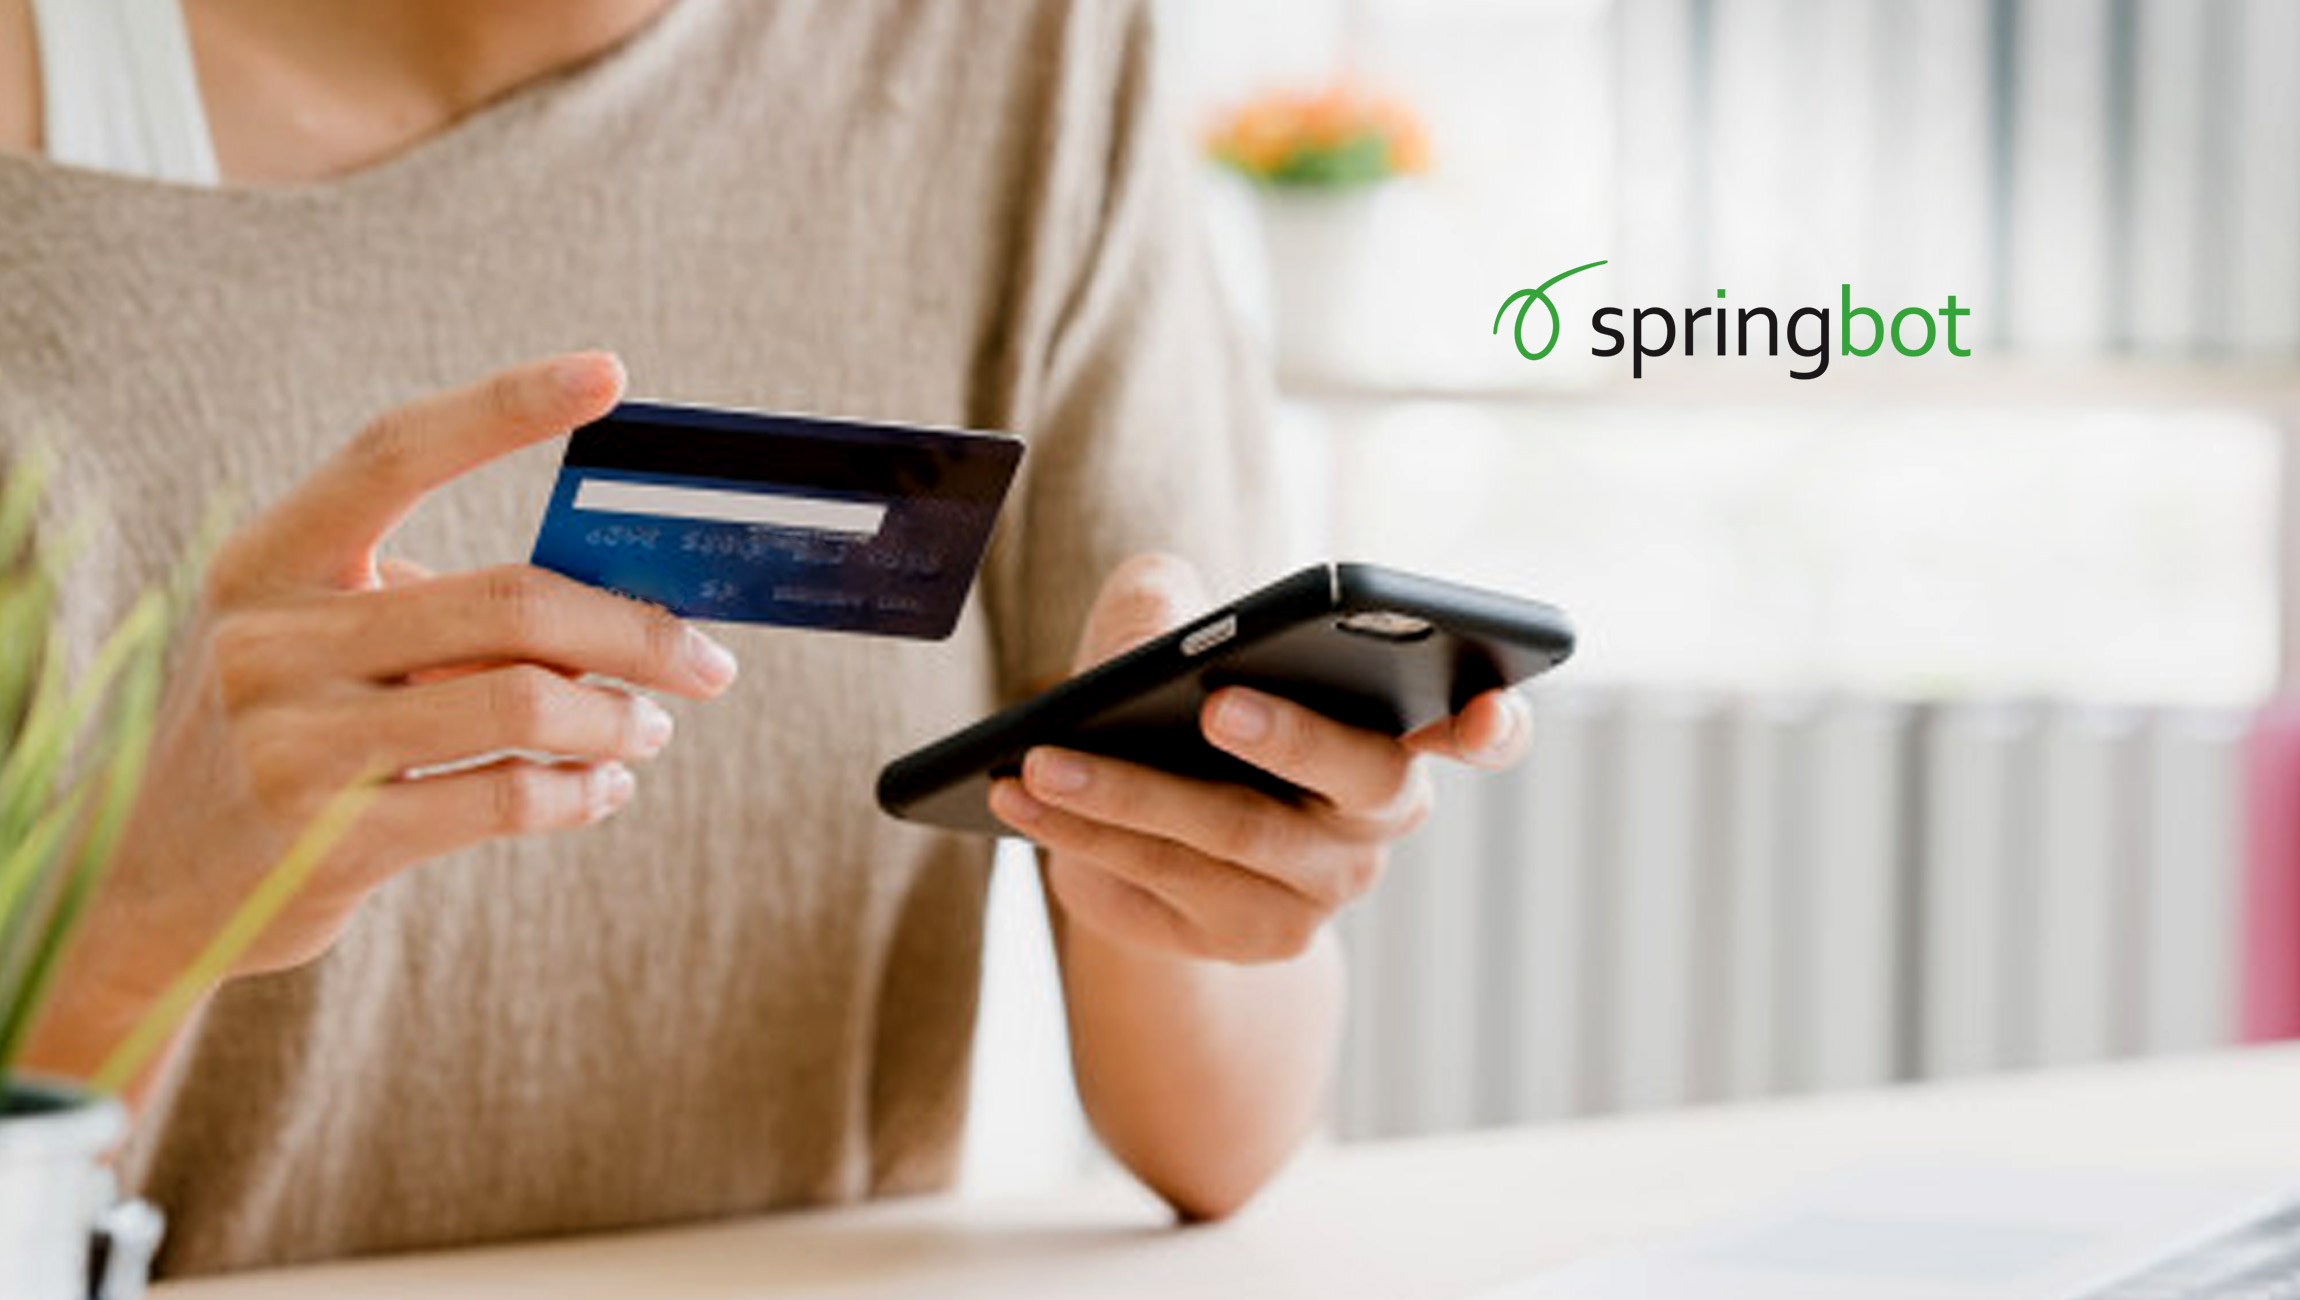 Springbot Introduces SMS Marketing, Allowing Retailers to Connect With Shoppers Via Text Messaging